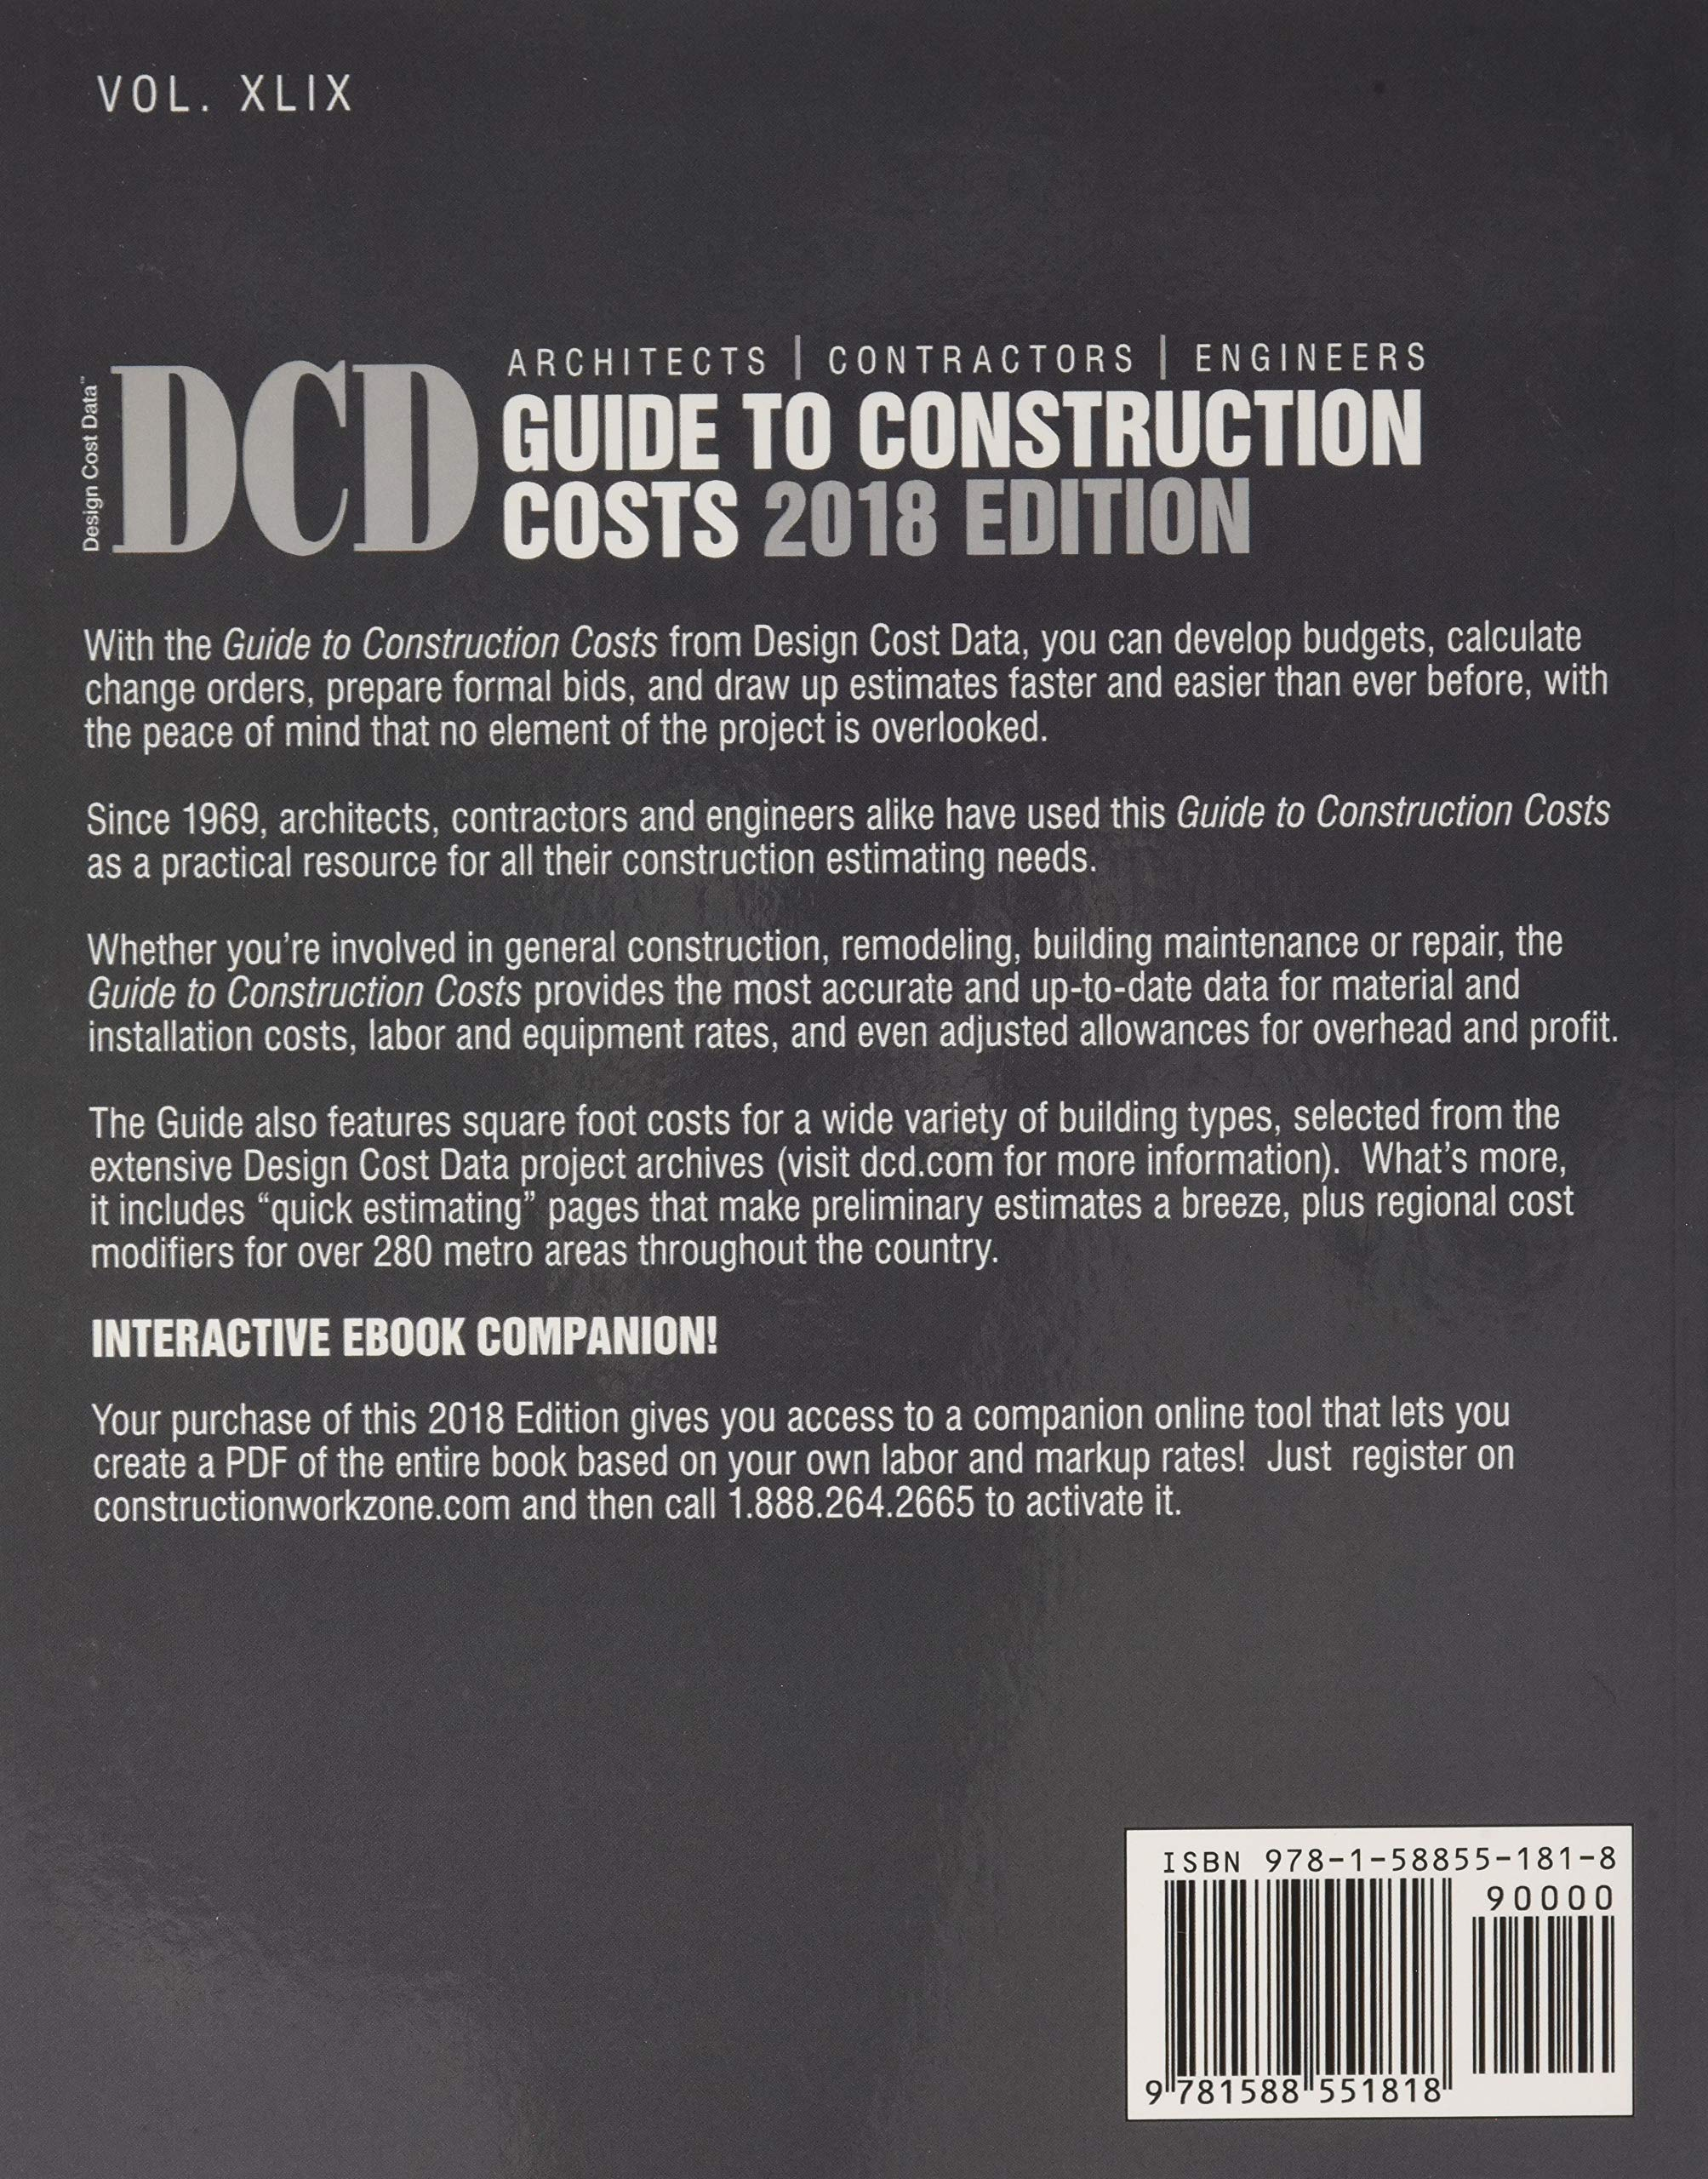 2018 DCD Guide to Construction Costs: Bni Building News